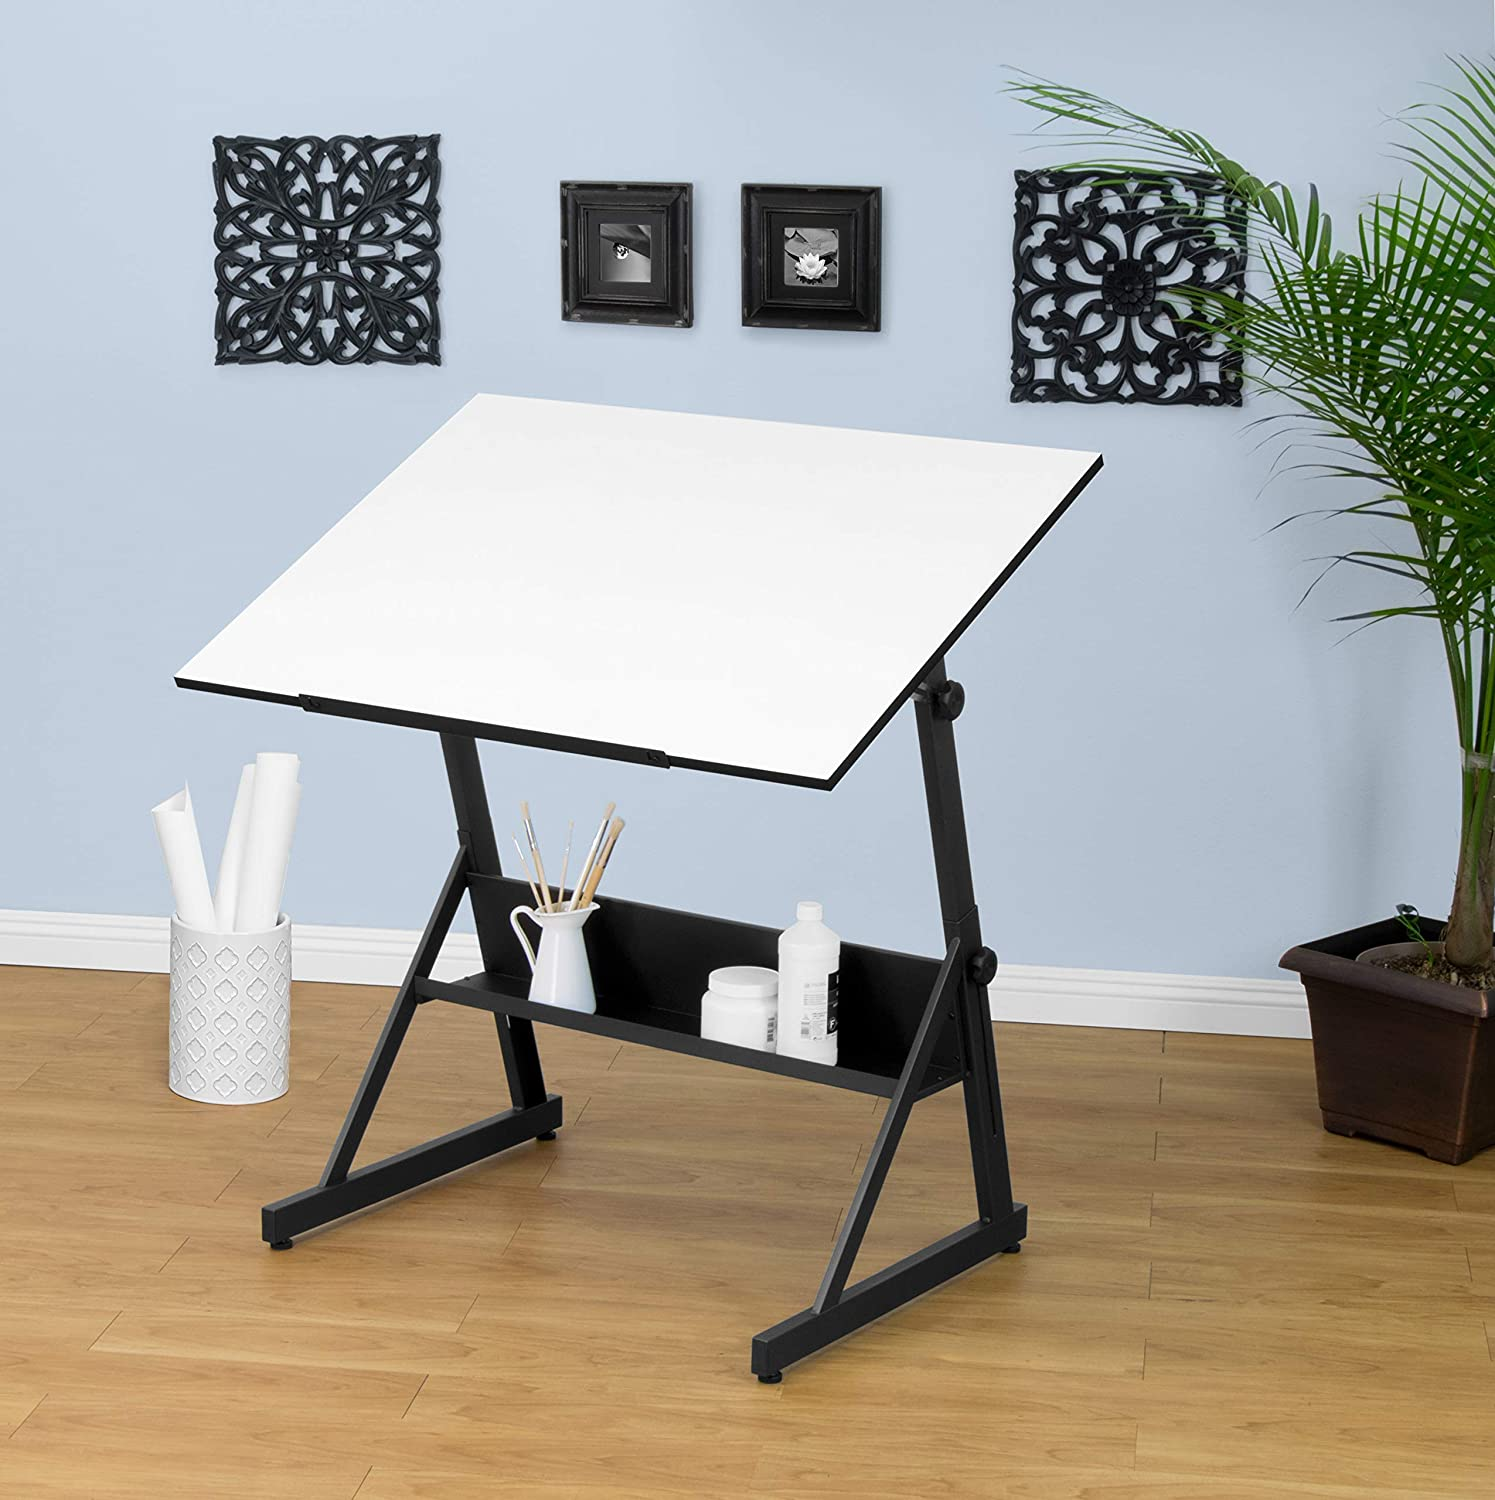 SD STUDIO DESIGNS Studio Designs 13344 Solano Adjustable Height Drawing Table with Angle Tilt Top from Flat to 80 Degrees, Charcoal White, Main Work Surface 41.5 W x 28 D, Black